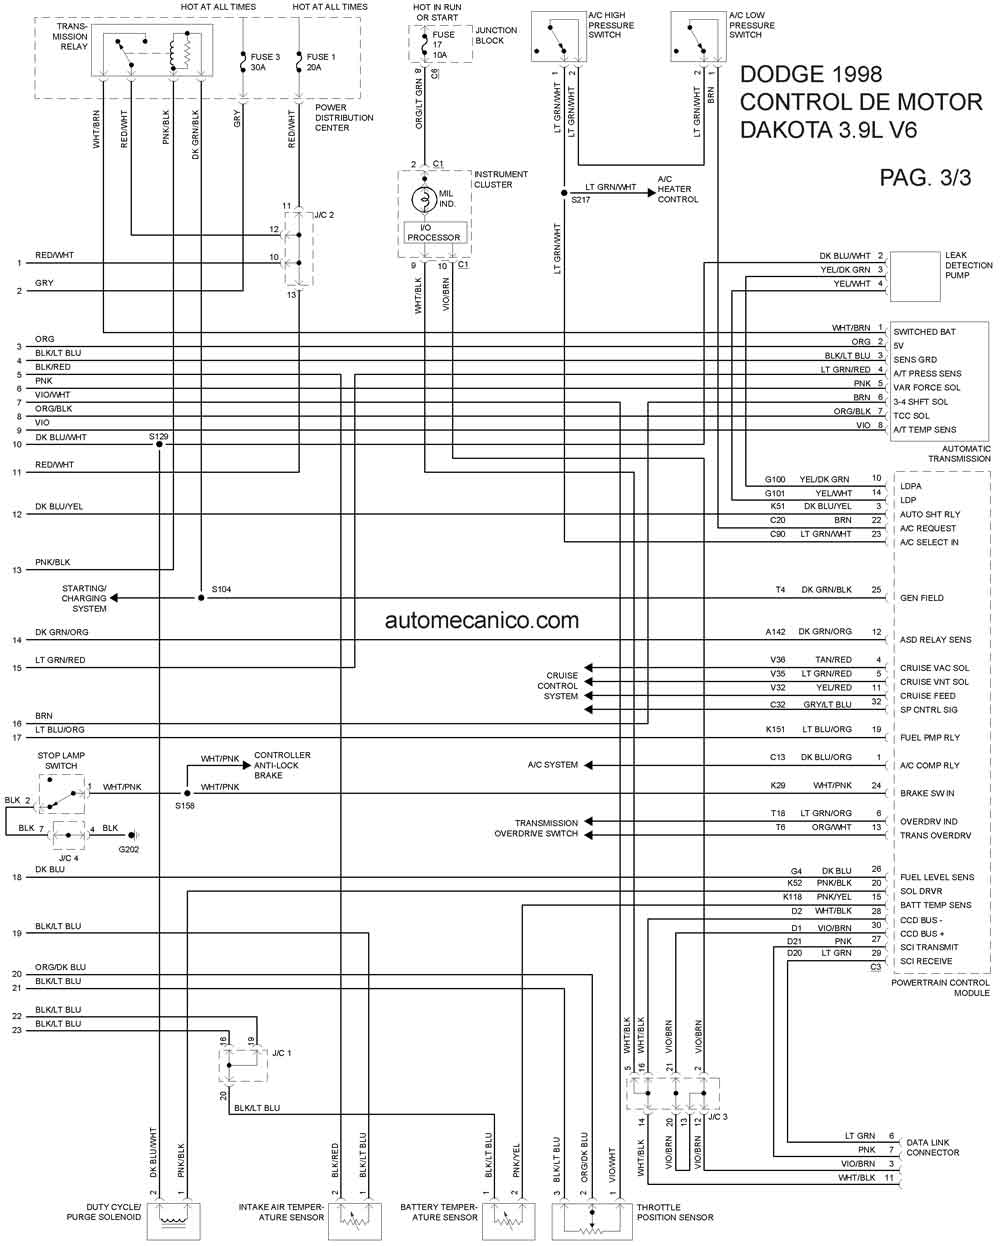 Traxxas 3 Diagrama Del Motor Auto Electrical Wiring Diagram 1985 Nissan 300zx Fuel Pump Relay Dodge 1998